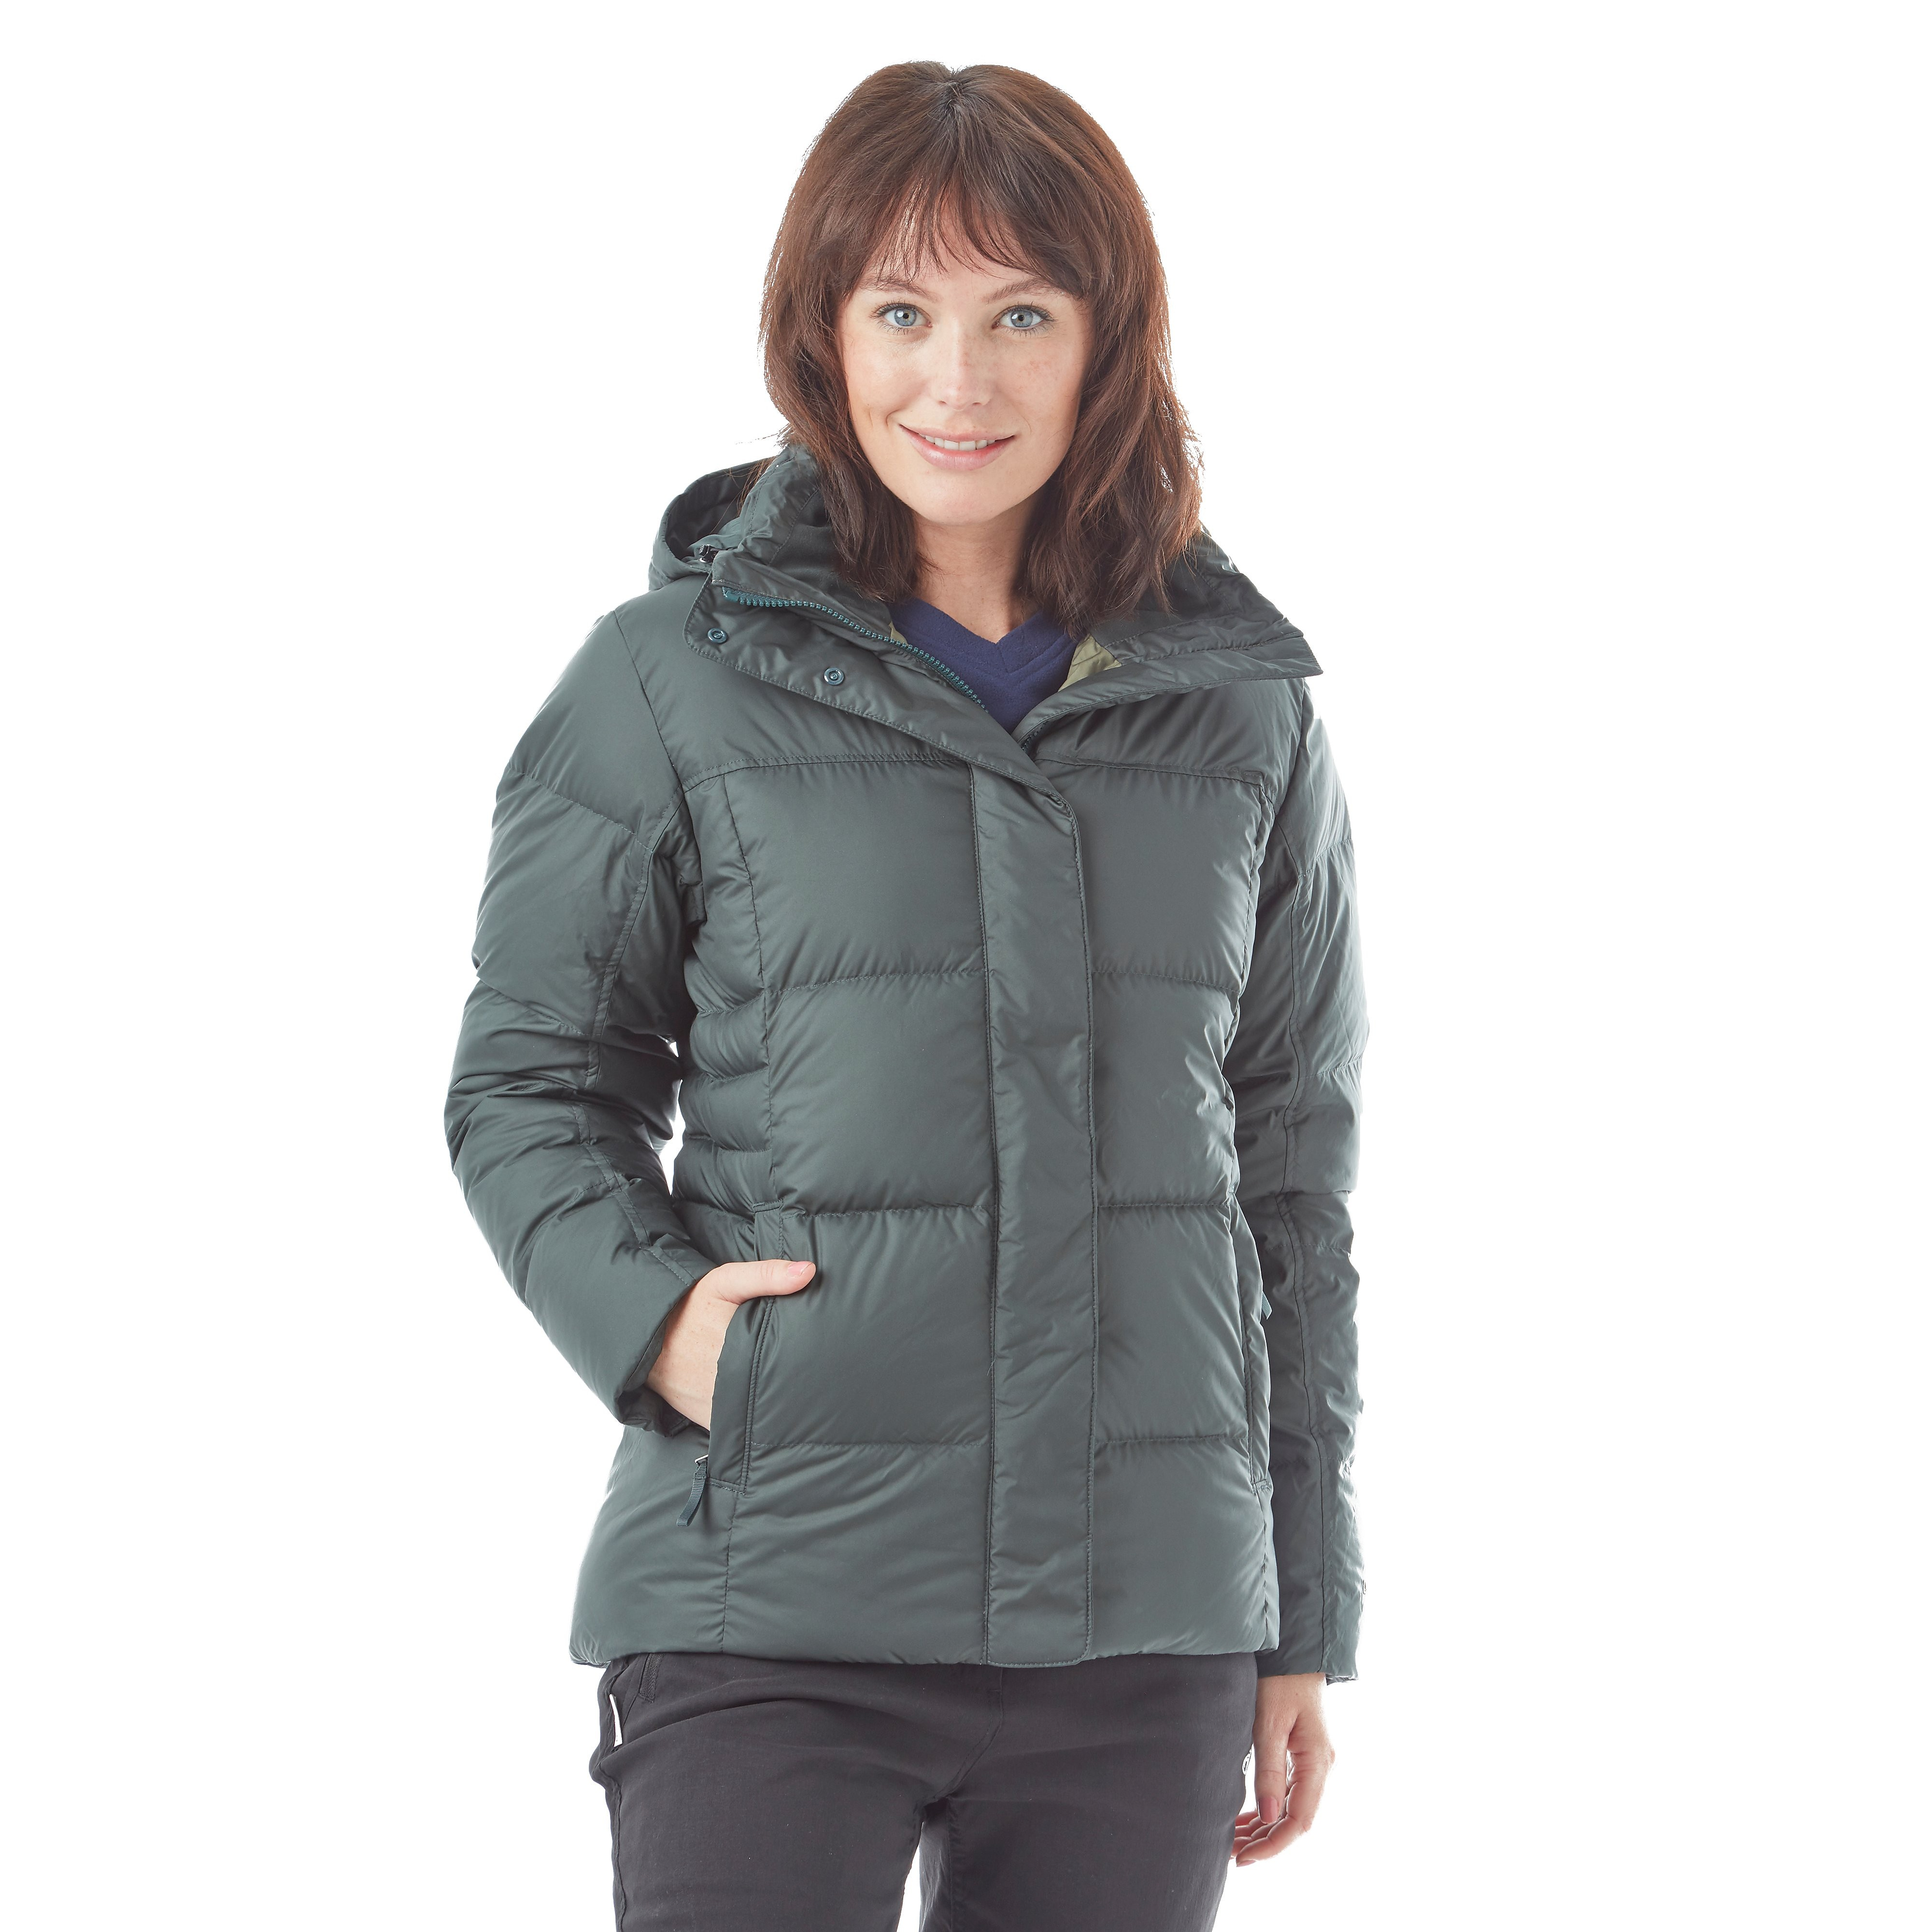 Patagonia Down With It Women's Jacket